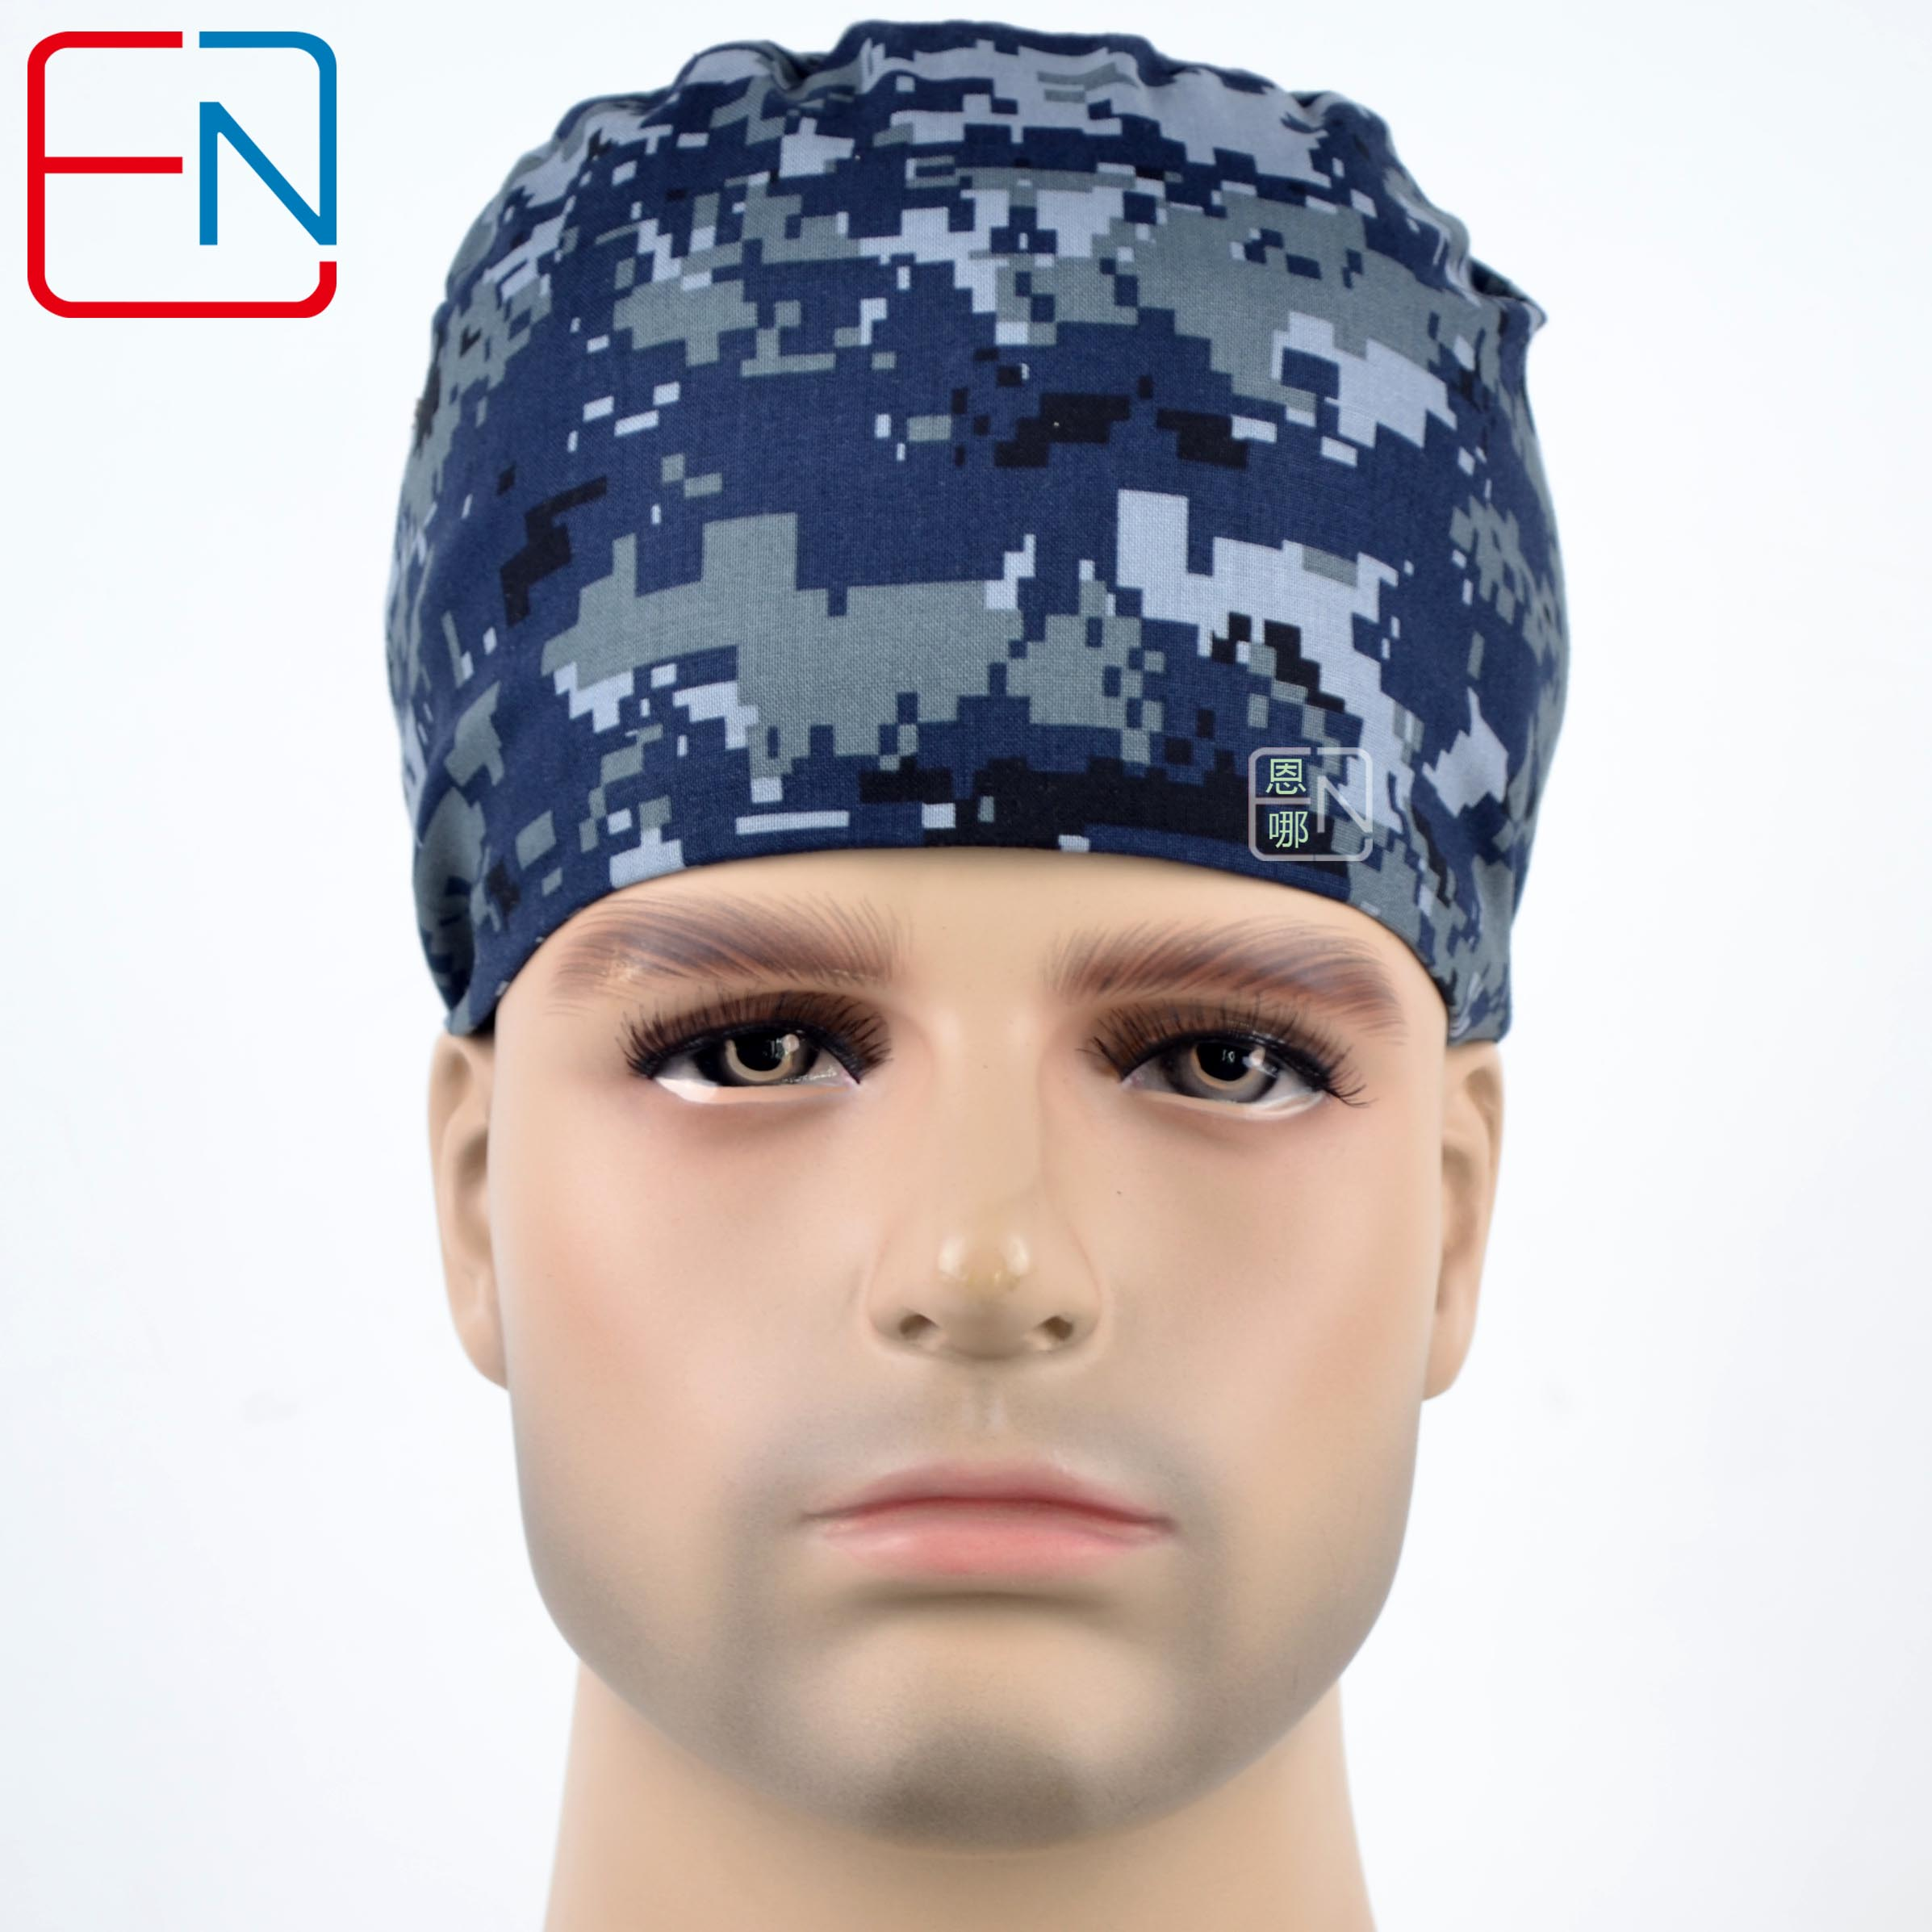 Hennar Medical Surgical Scrub Caps Doctor Nurse Medical Surgical Scrub Caps Surgical Surgeon's Camouflage Cap Dentist Pet Doctor